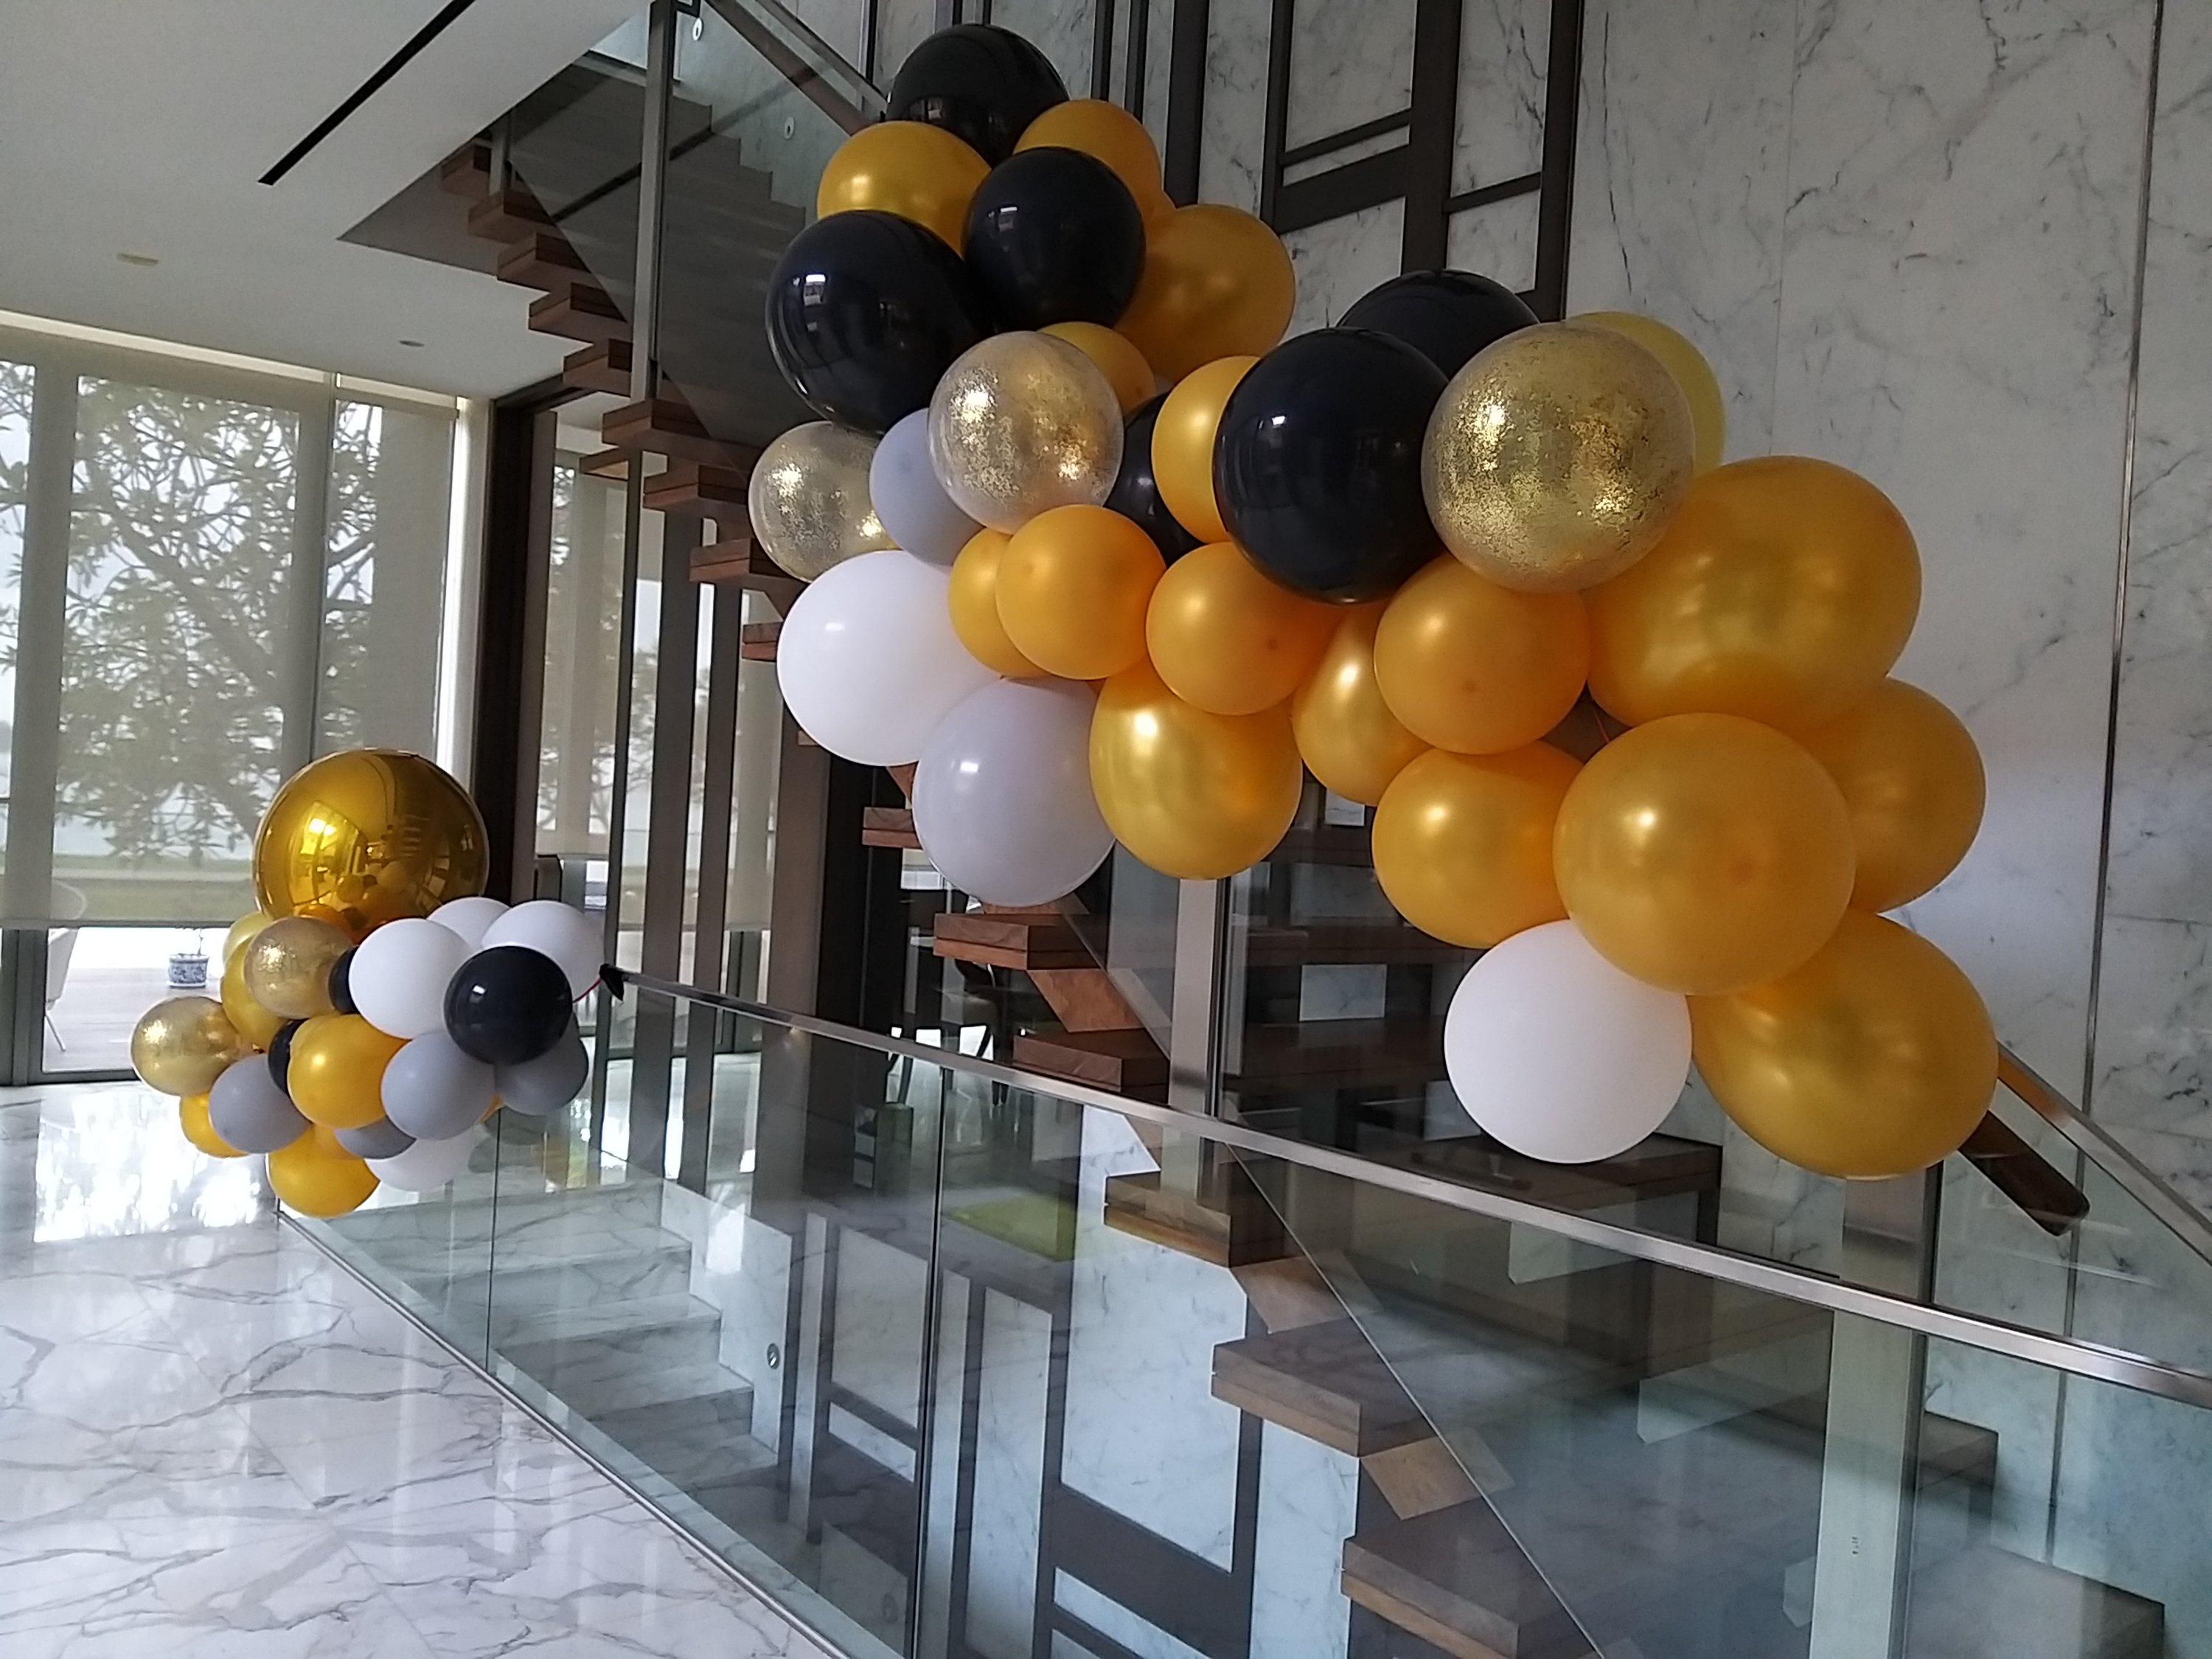 , 21st birthday balloon decoration ideas, Singapore Balloon Decoration Services - Balloon Workshop and Balloon Sculpting